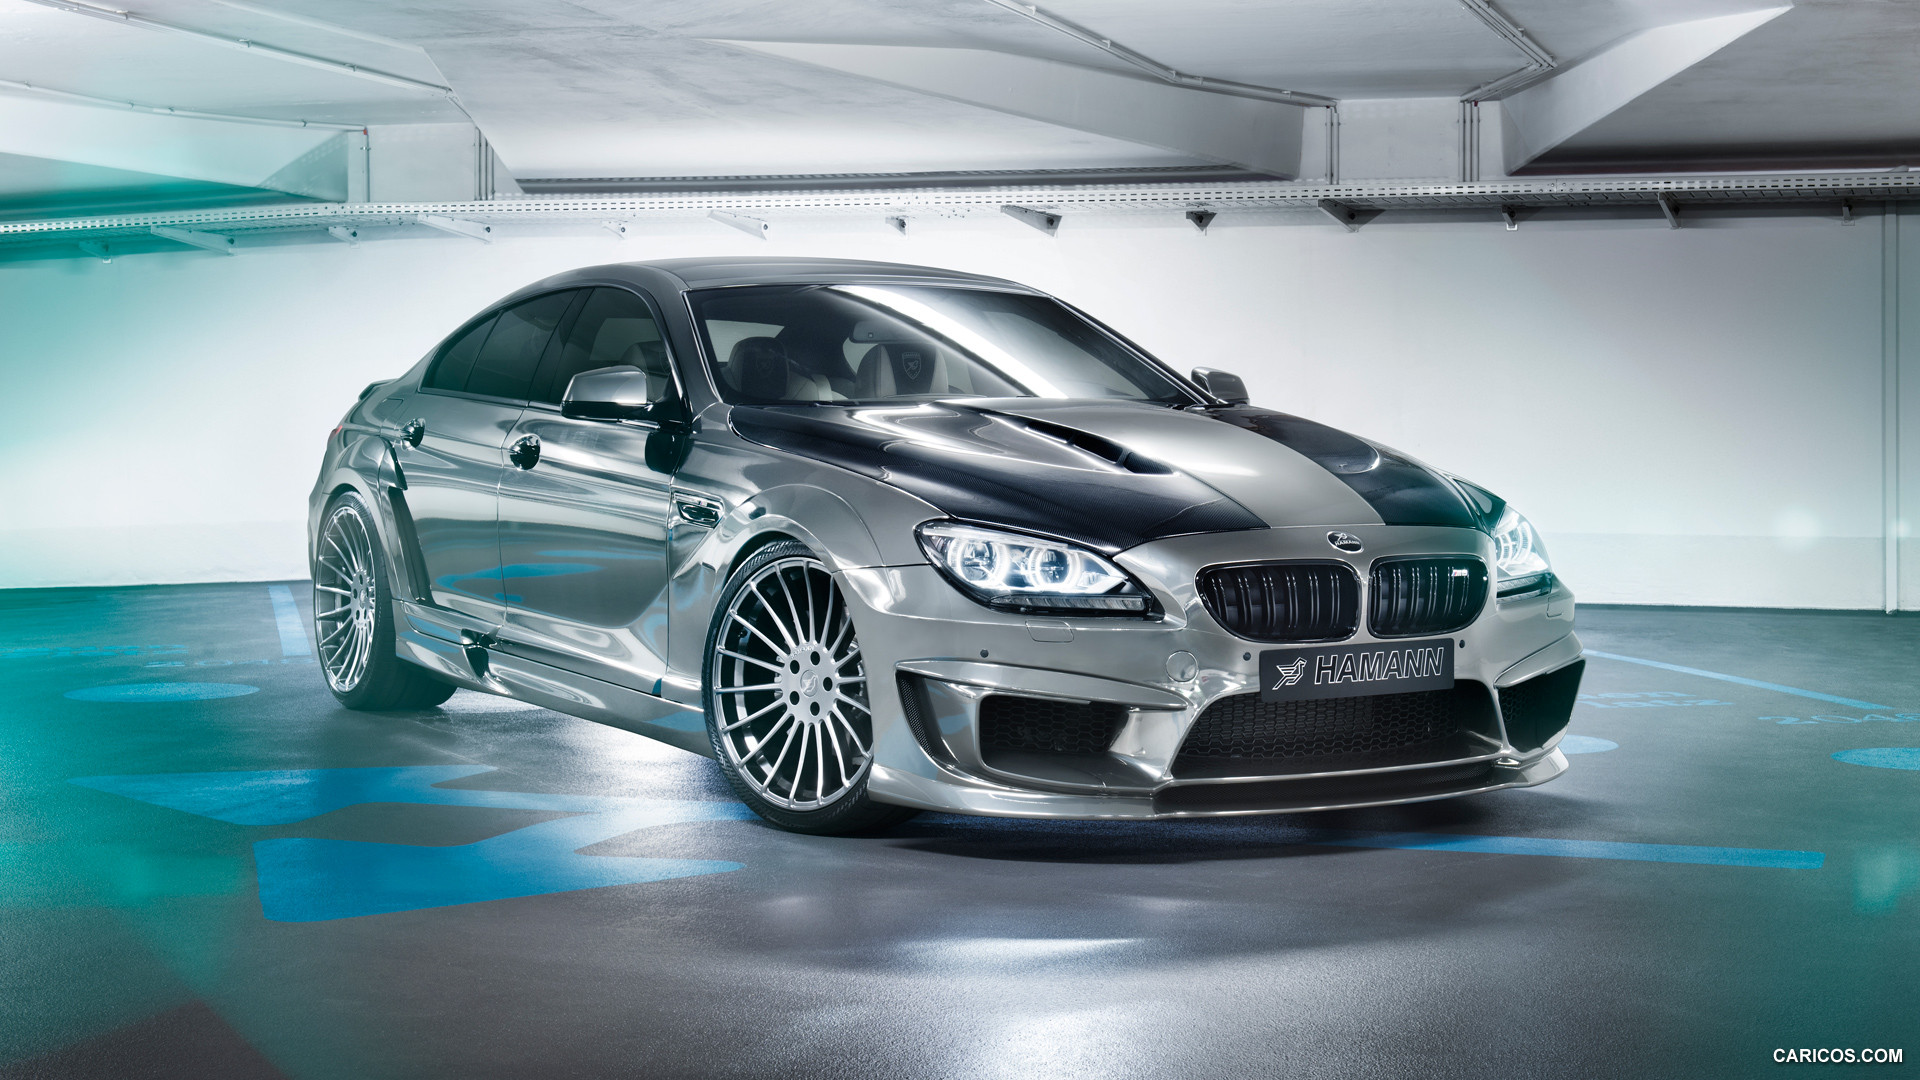 HAMANN MIRROR GC based on BMW M6 Gran Coupe Wallpaper